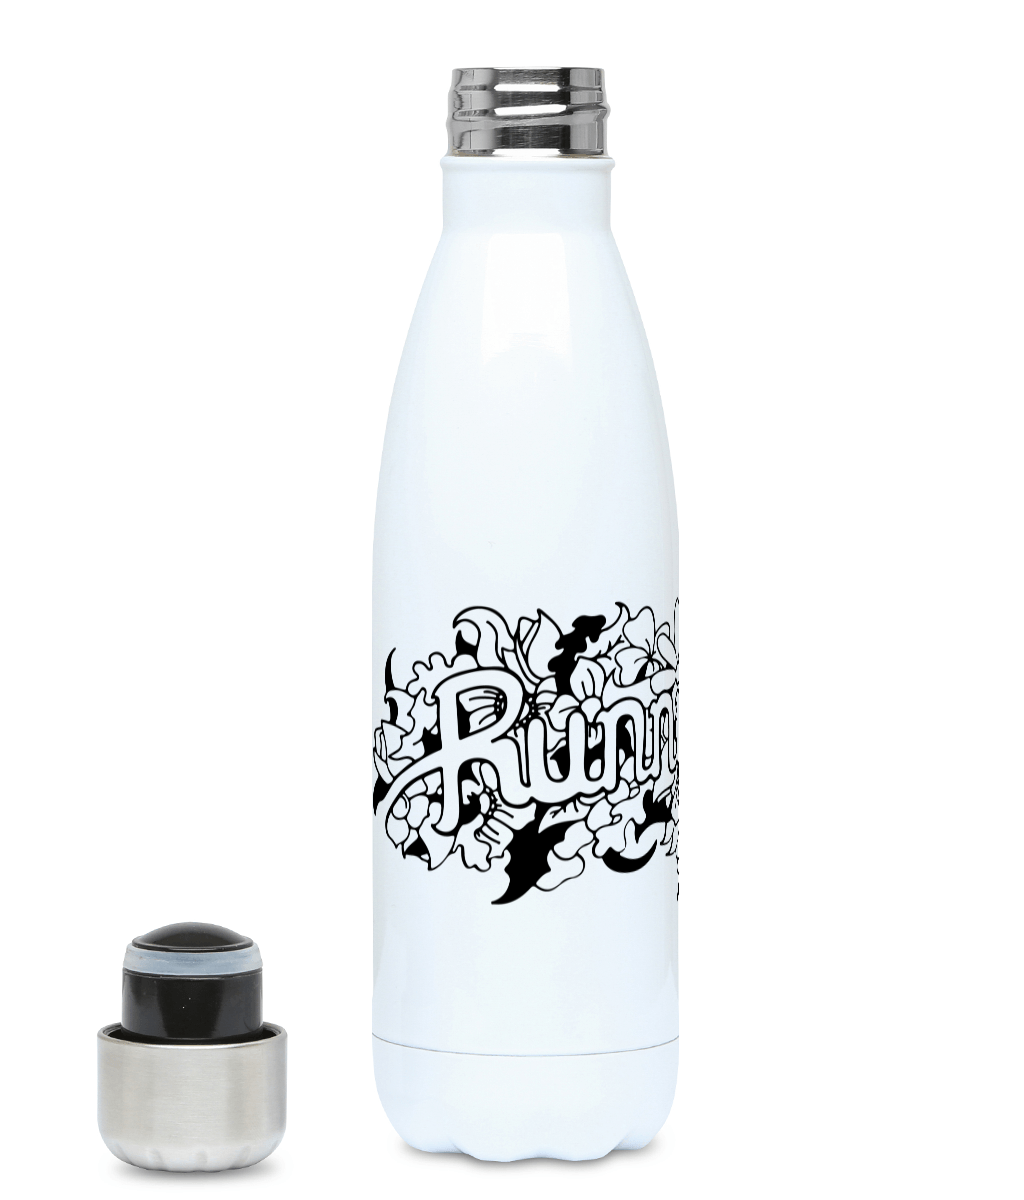 Running Wild - Plastic Free 500ml Water Bottle, Suggested Products, Pen and Ink Studios Adventure Clothing